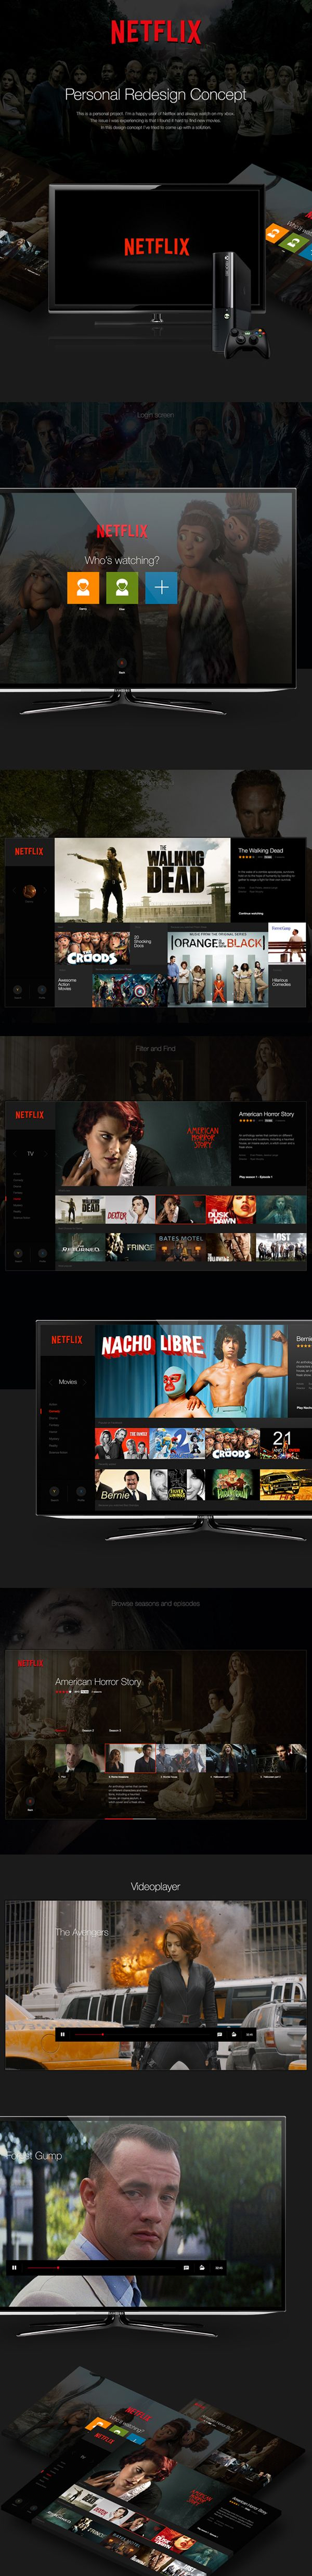 NETFLIX | Personal web redesign concept